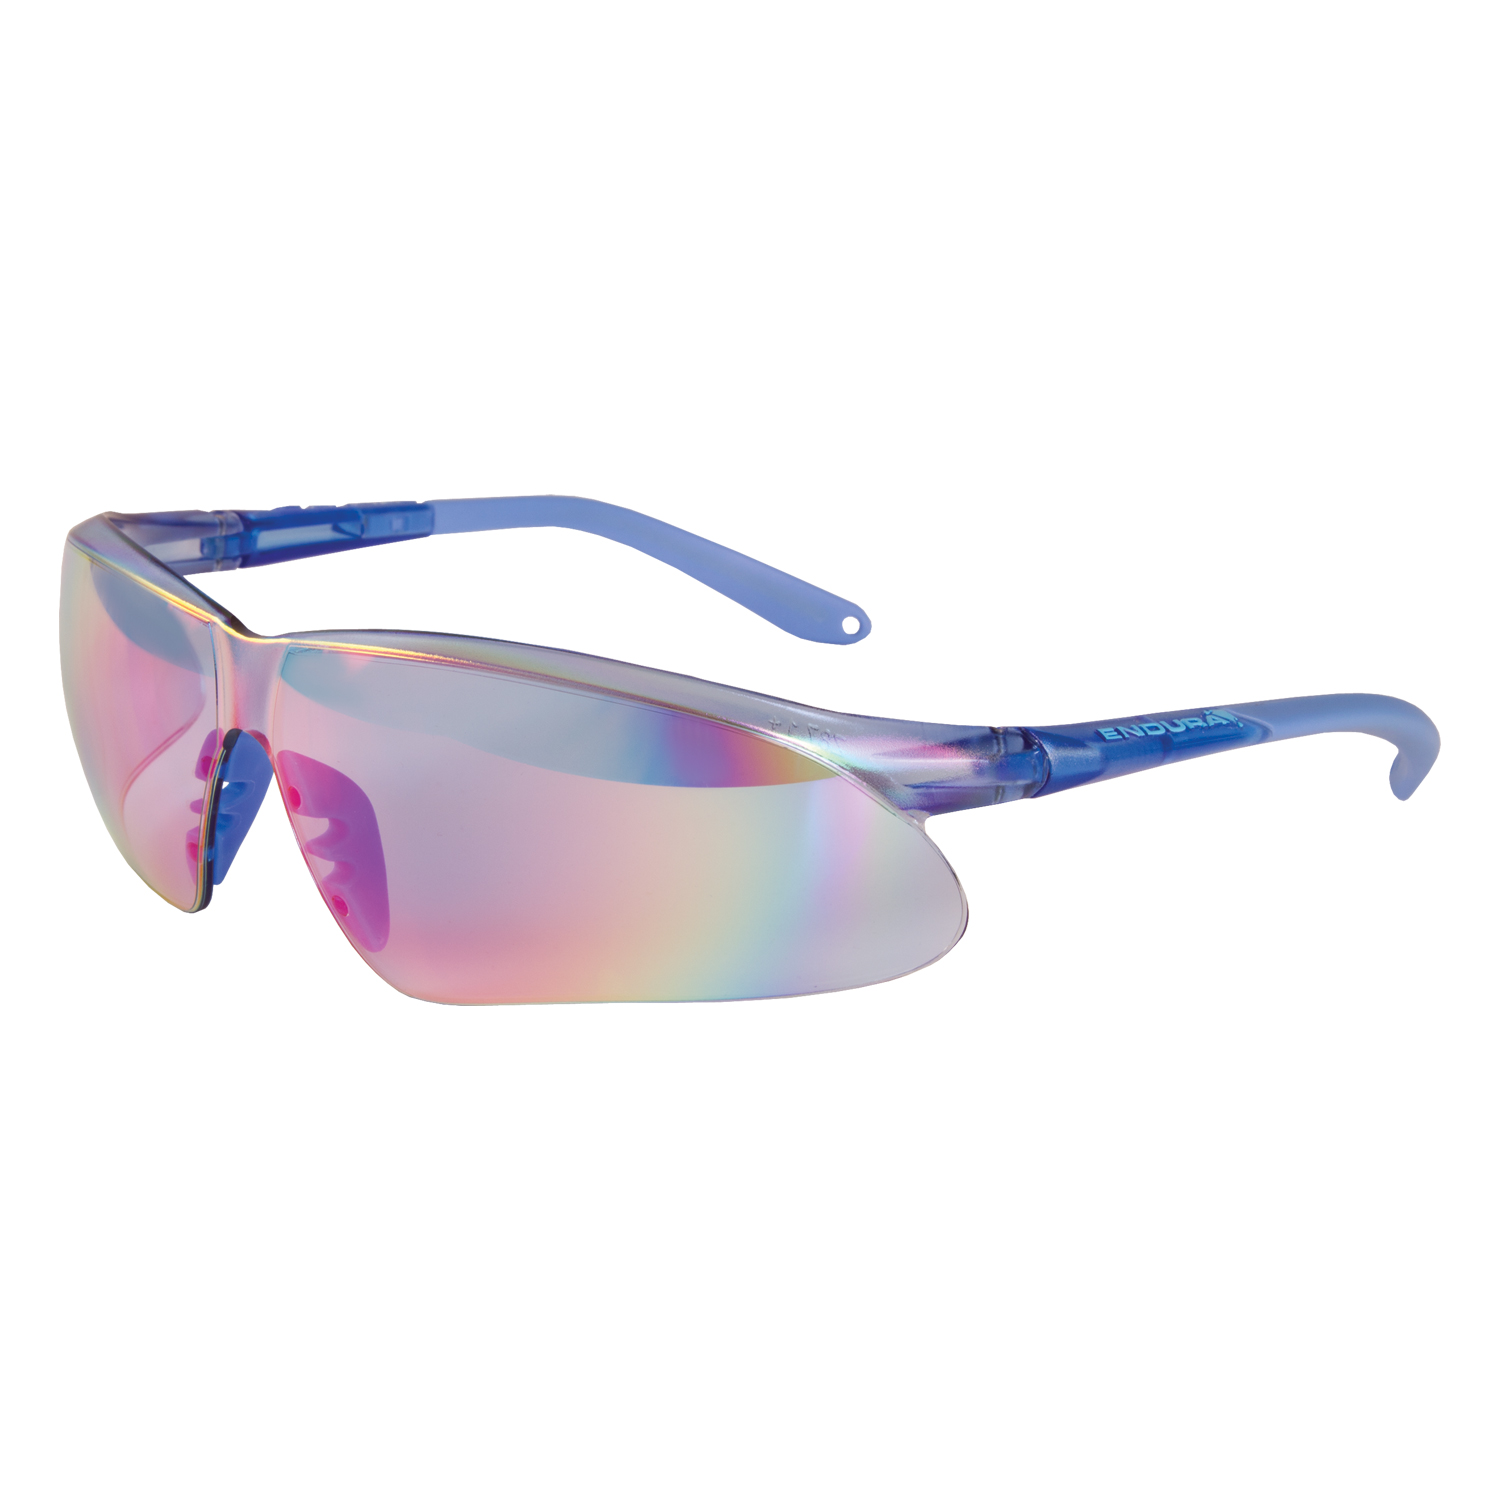 Spectral Glasses Blue